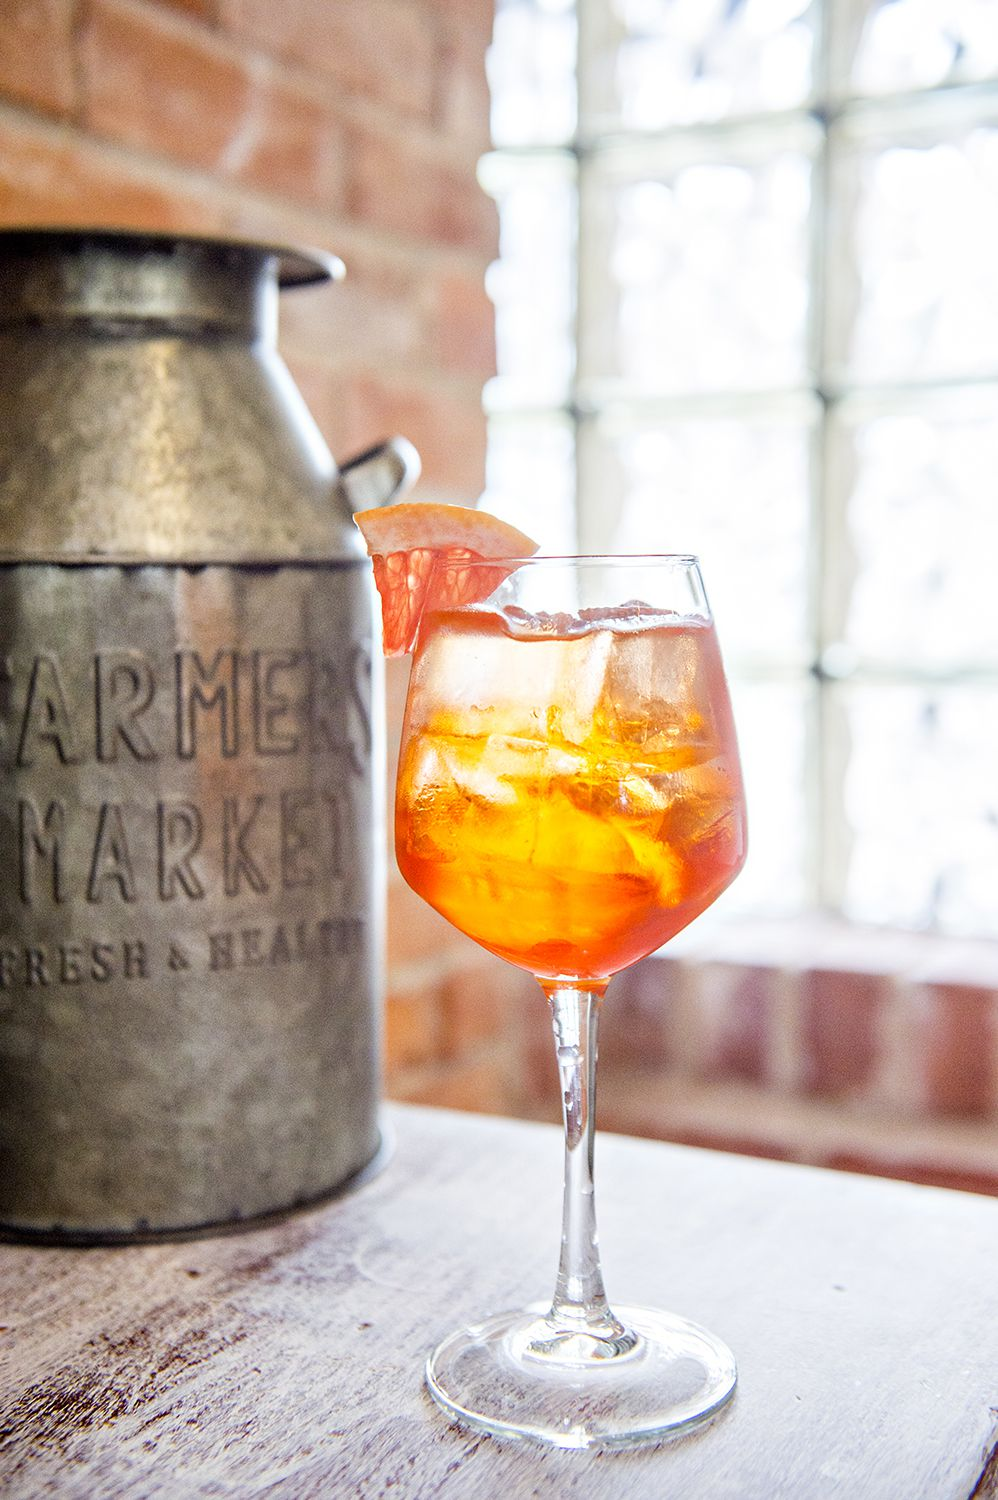 The Aperol Spritz with a garnish of grapefruit at Ivy on 7th